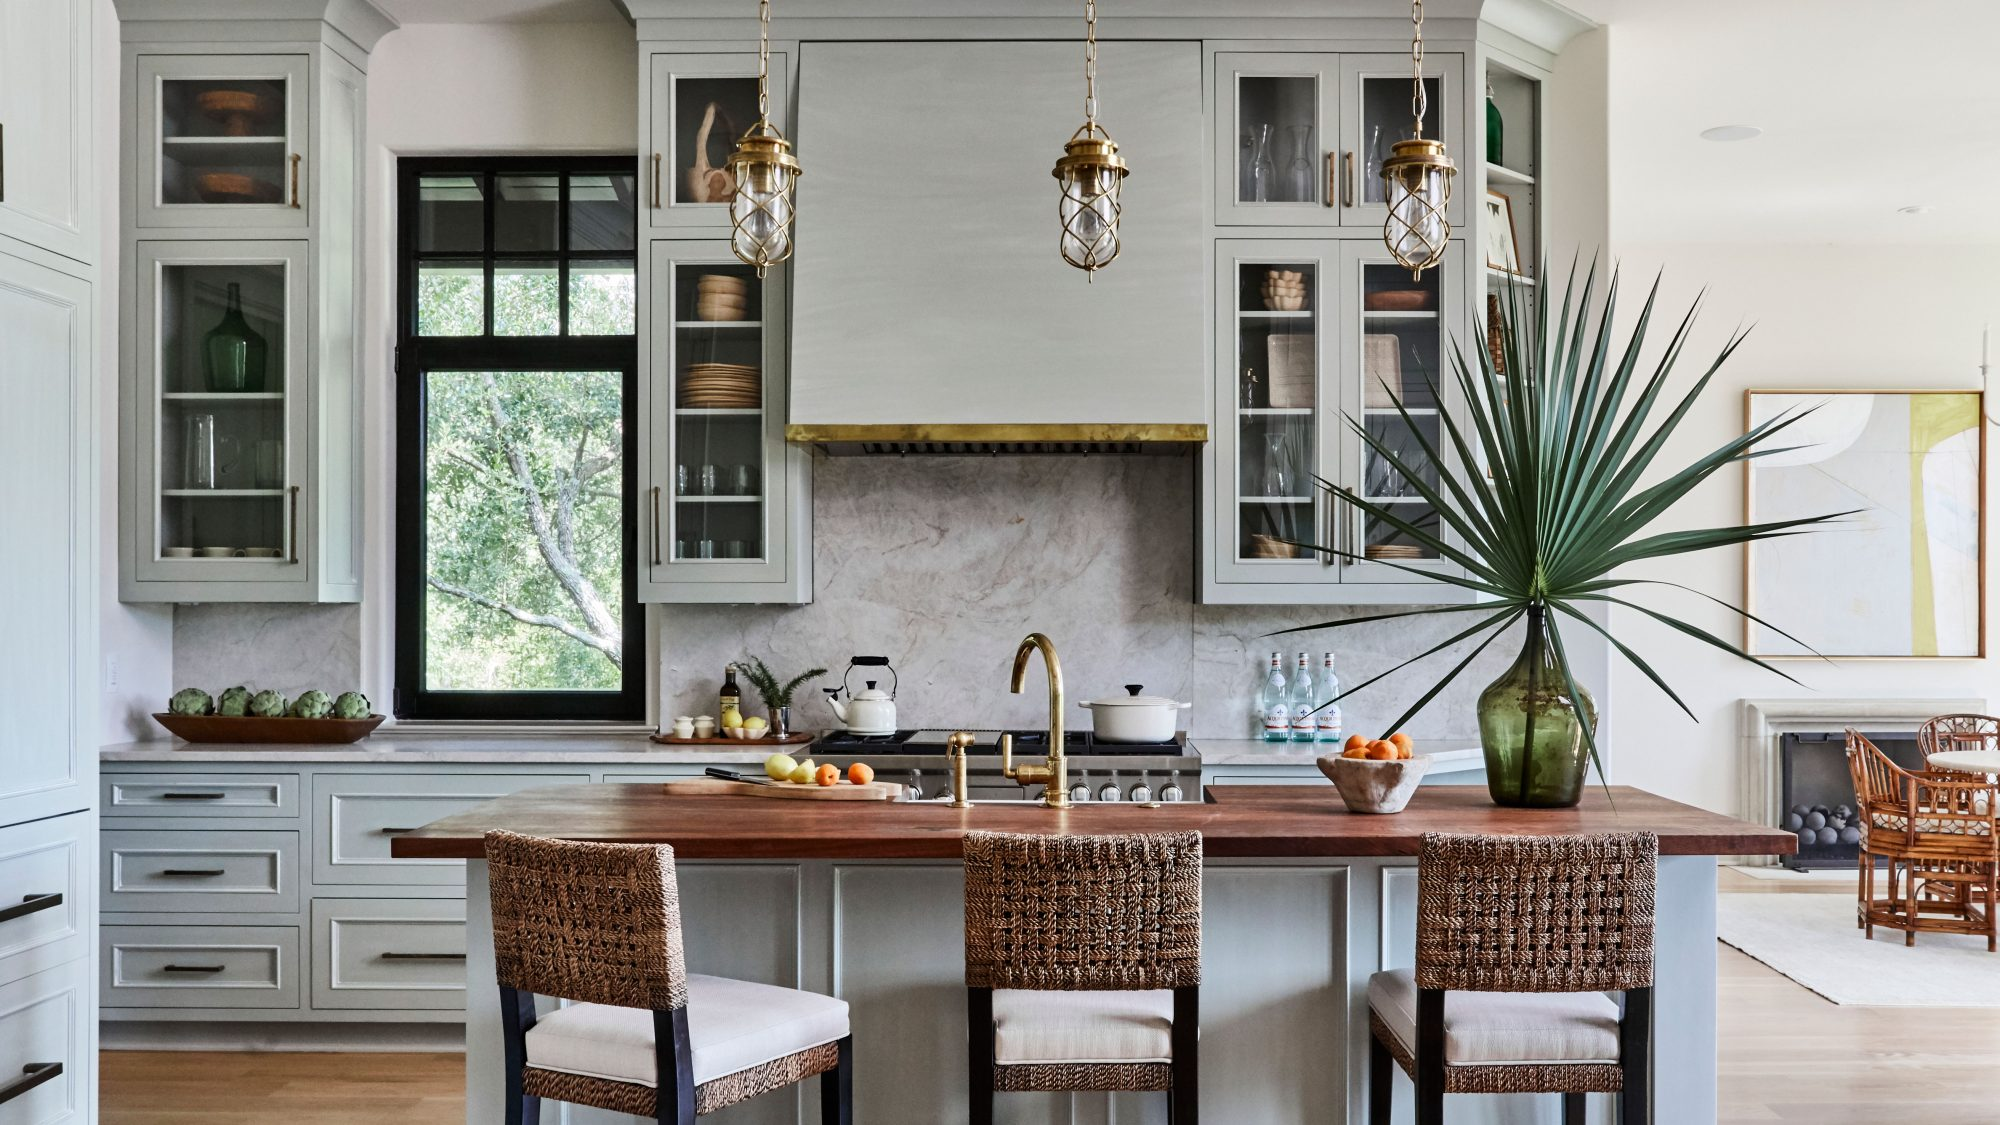 Kitchen with a neutral palette